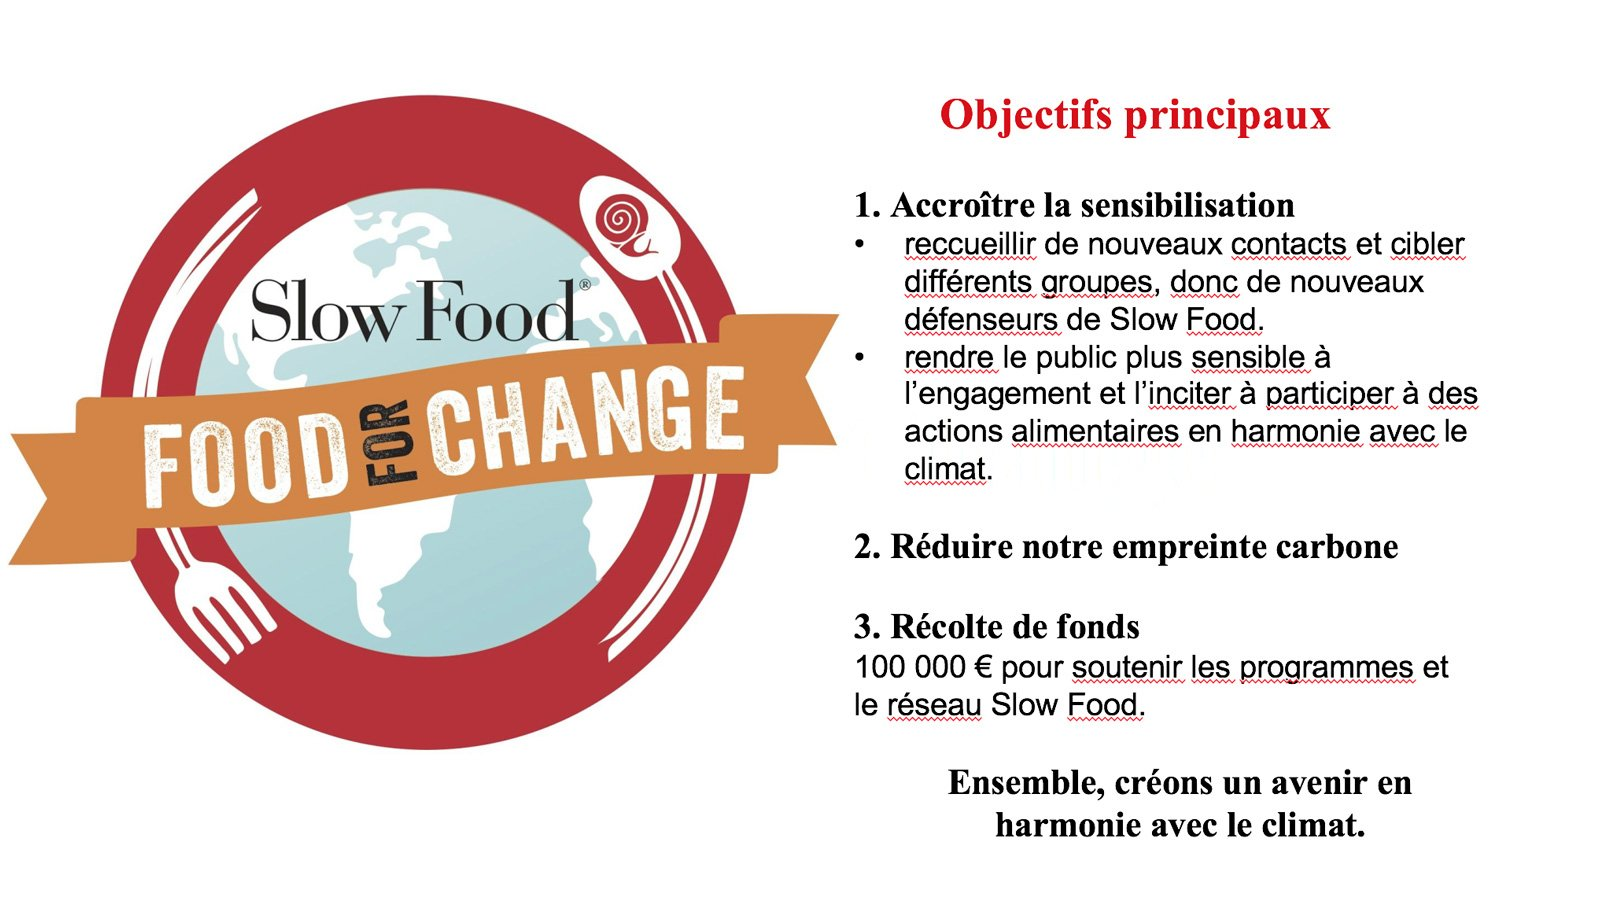 slowfood-campagne-slow-food-climat-alimentation-food-for-change-synthese-1-1600x899